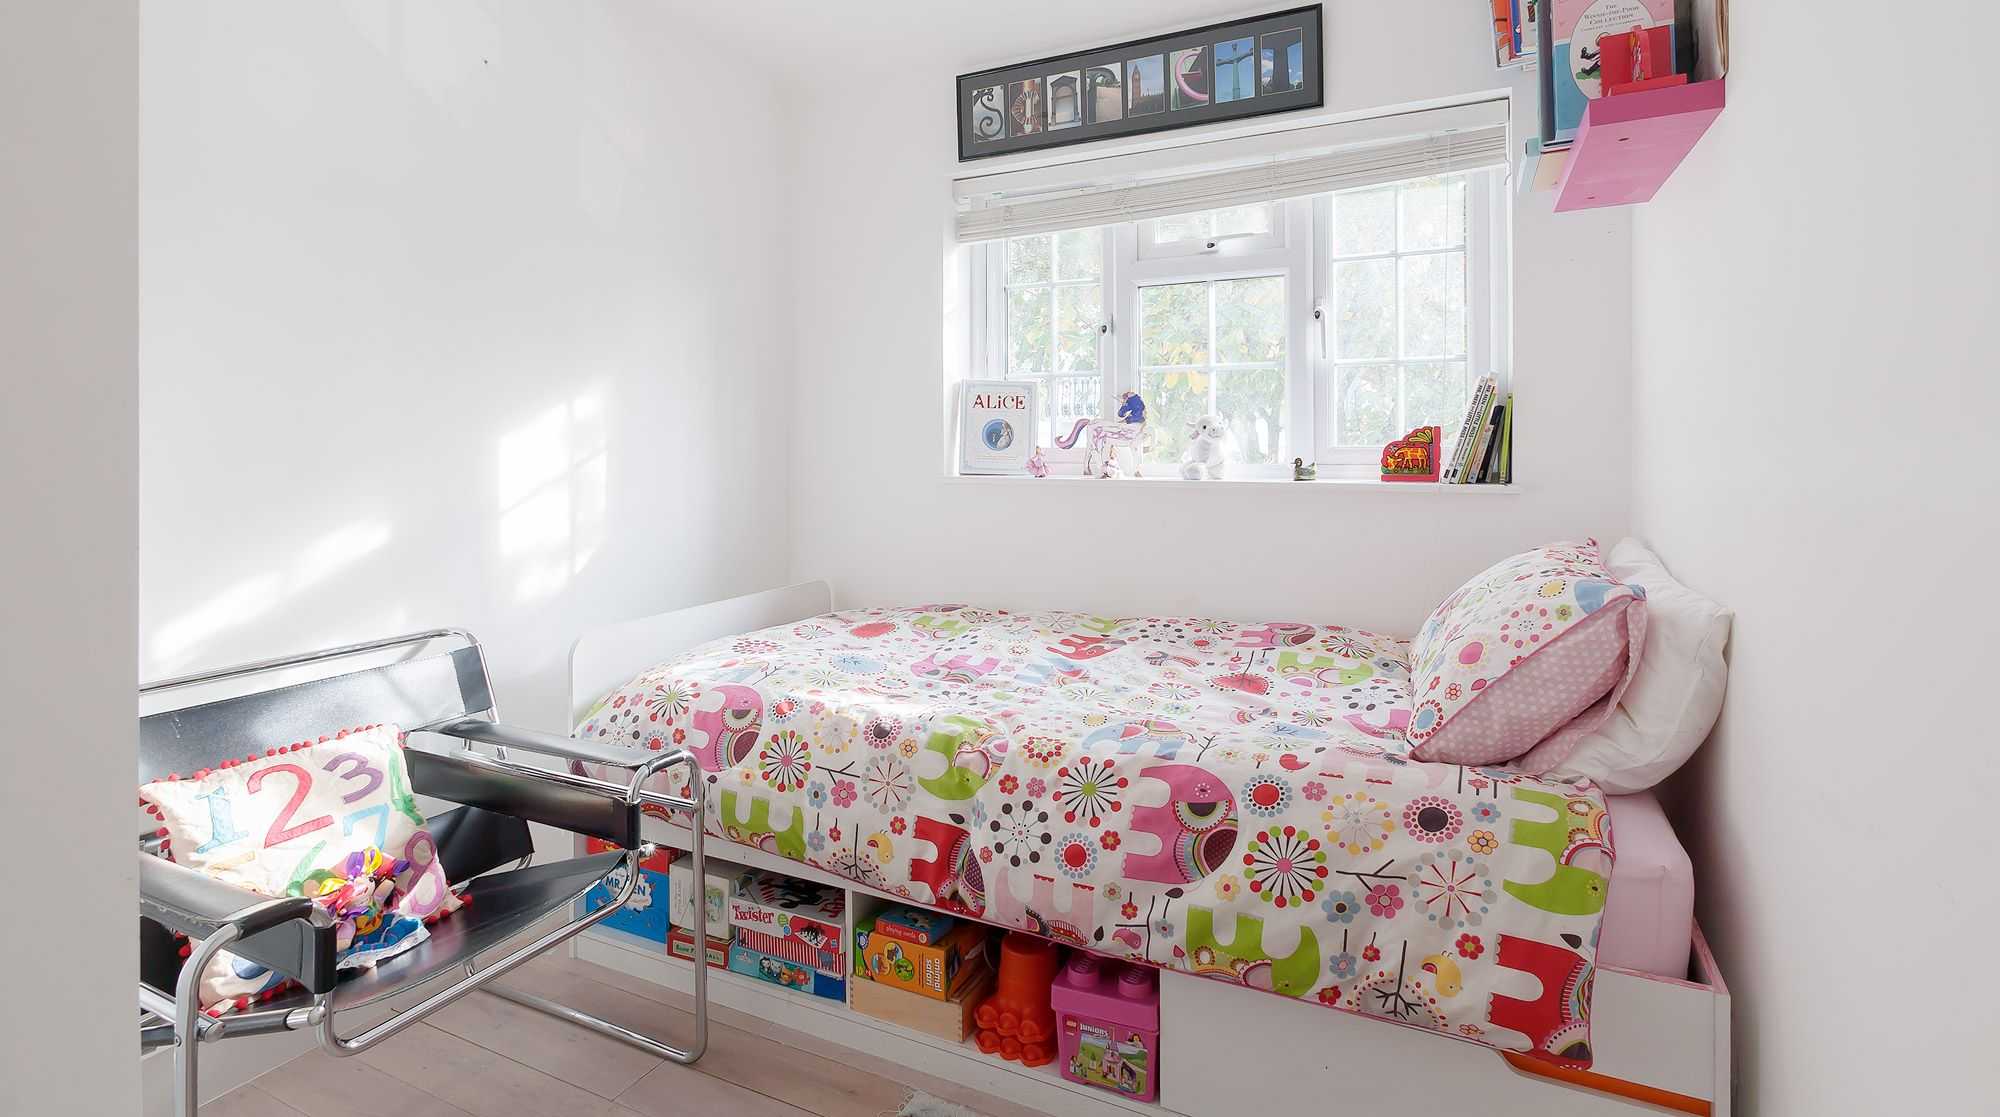 Even small spaces can be havens for children store toys under the